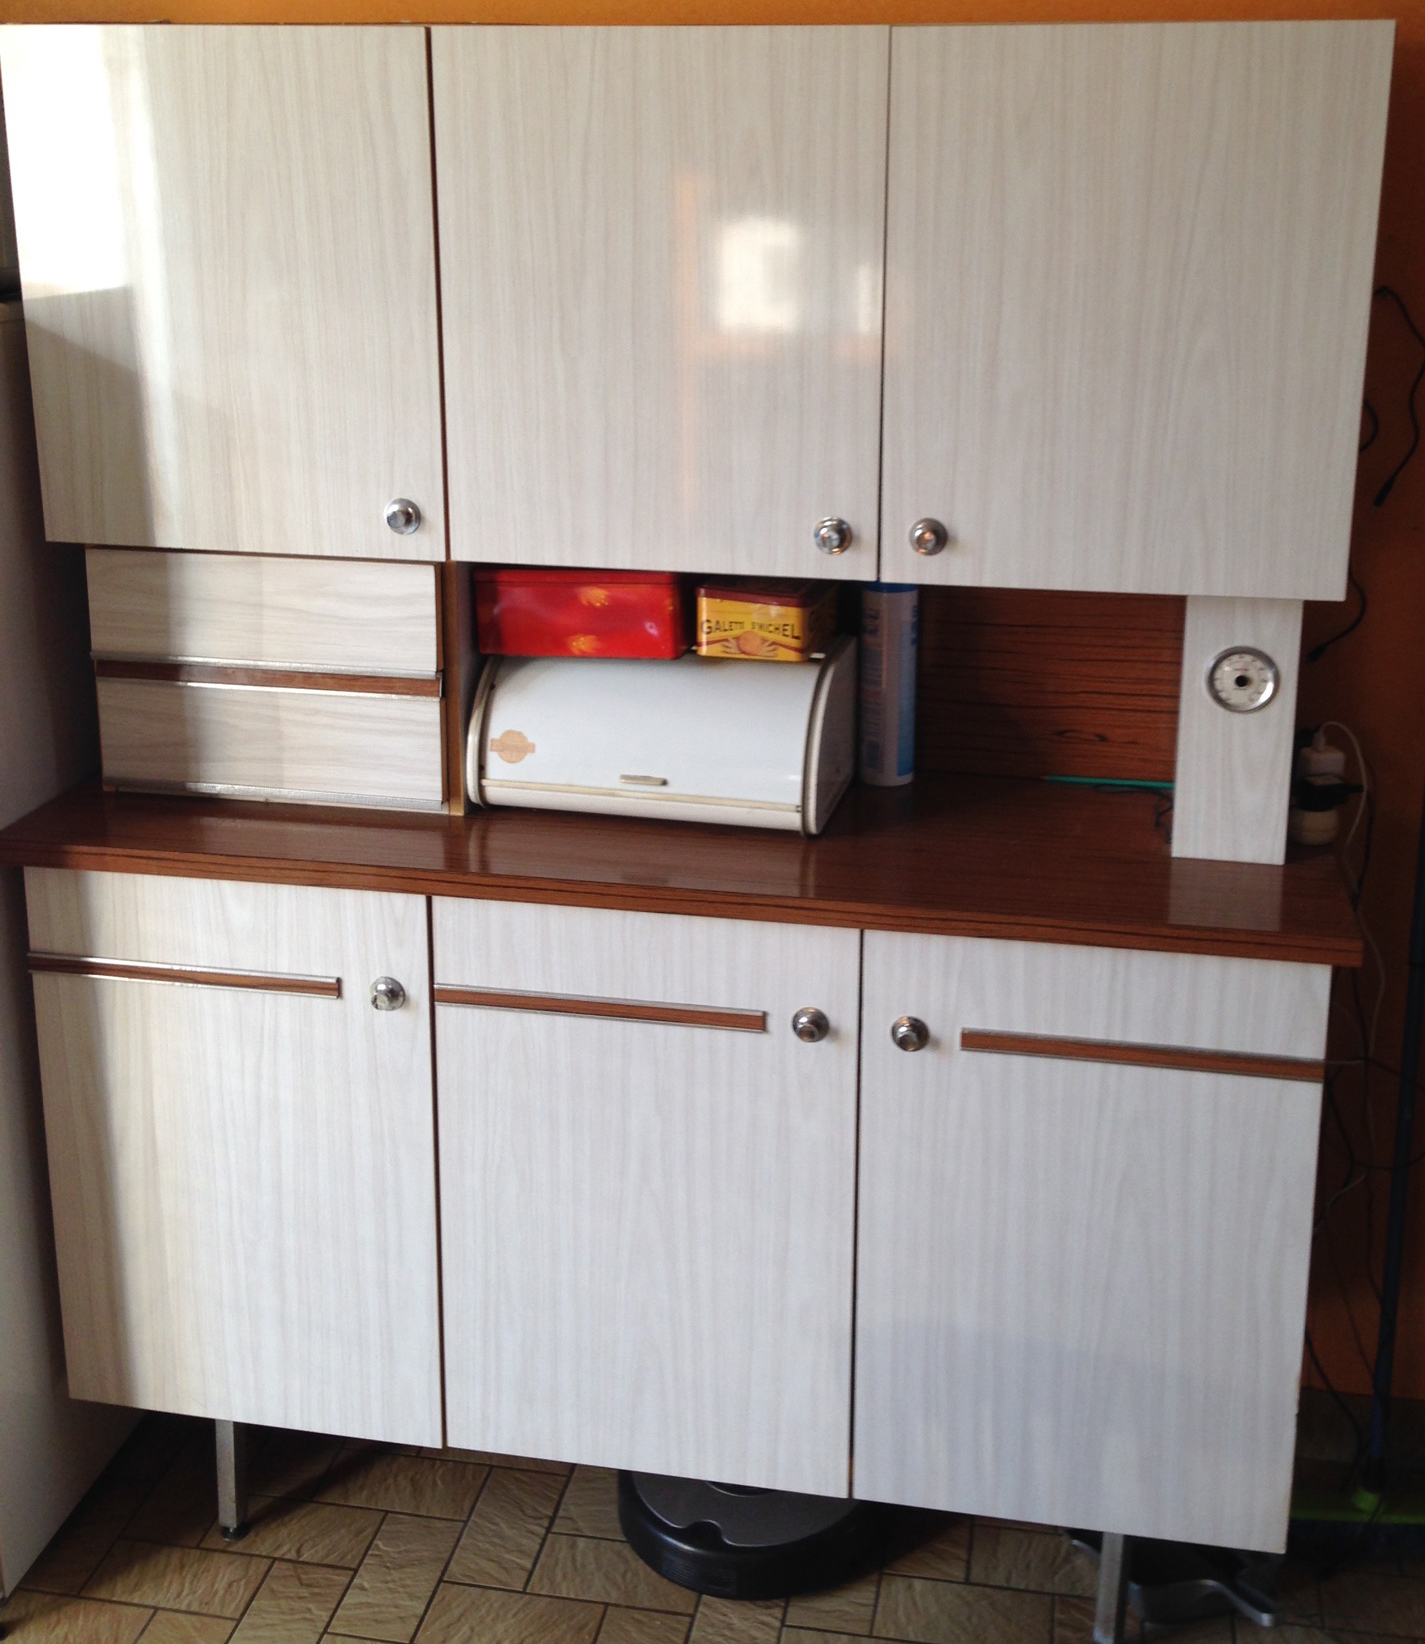 Le Formica C Etait Formidable Et Made In France De Coquina Rerum